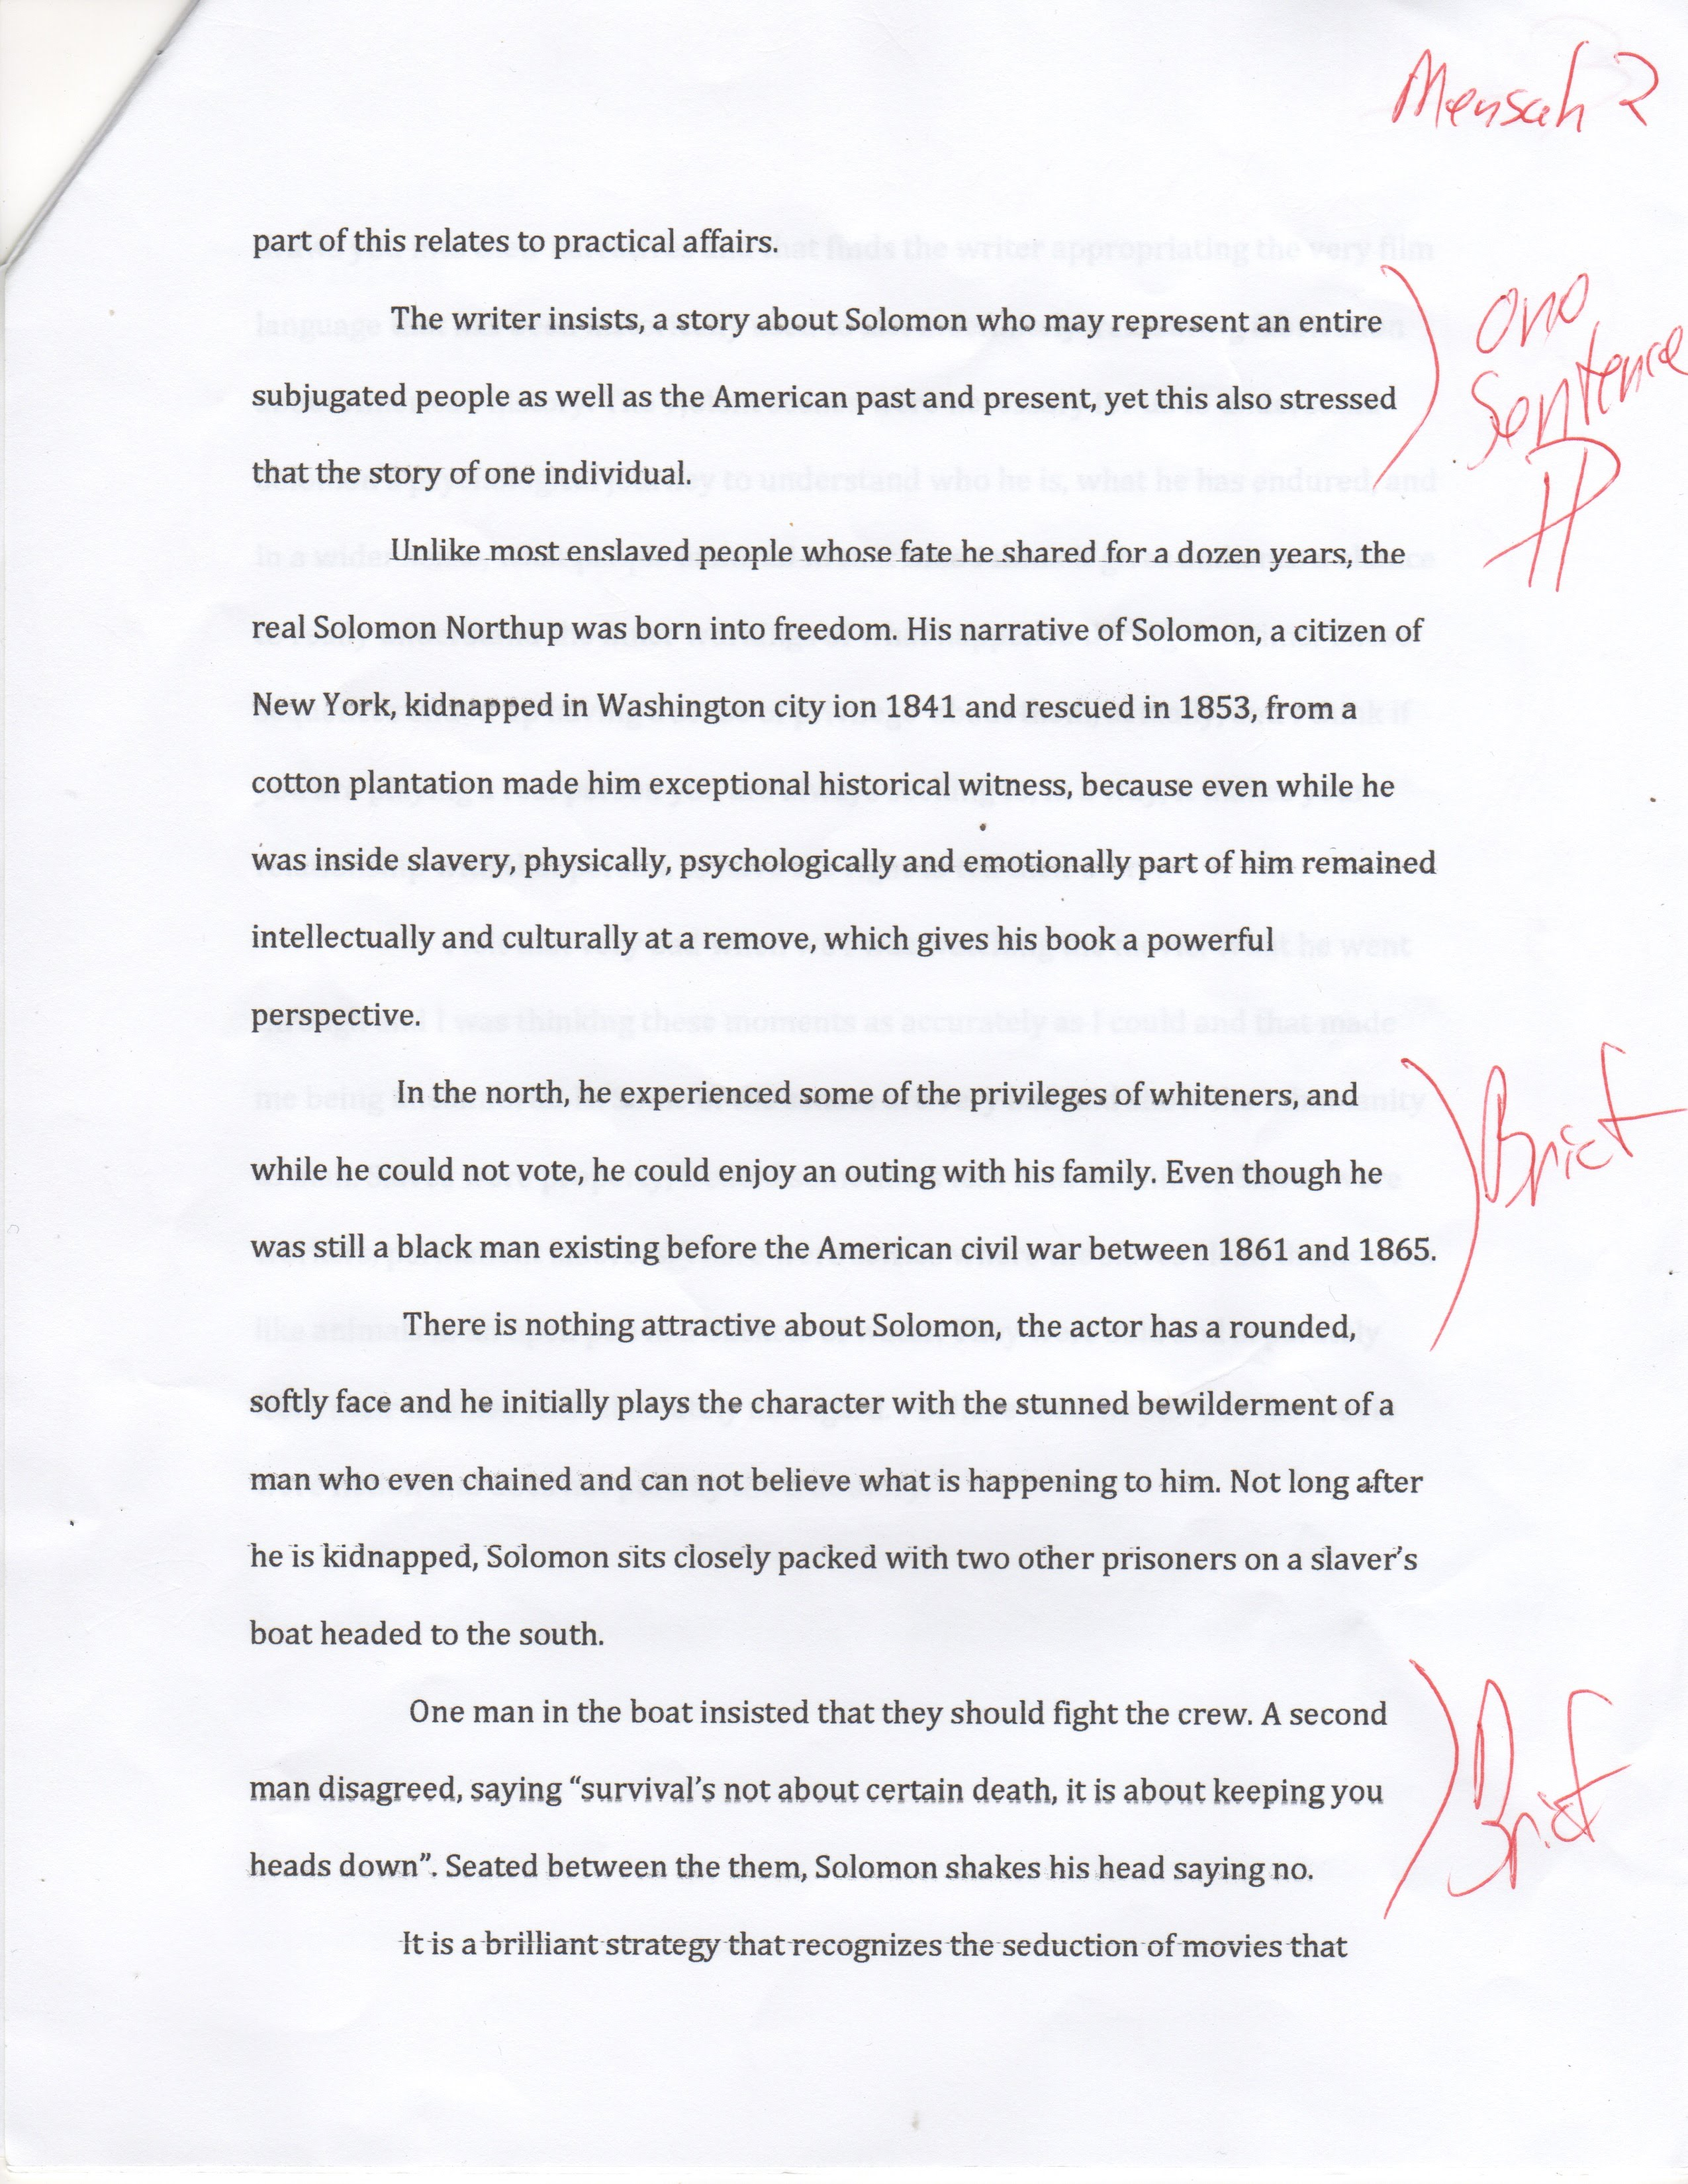 organizational behavior essay topics accounting essay topics  essay topics on media essay topics on media our work media essay essay topics on media